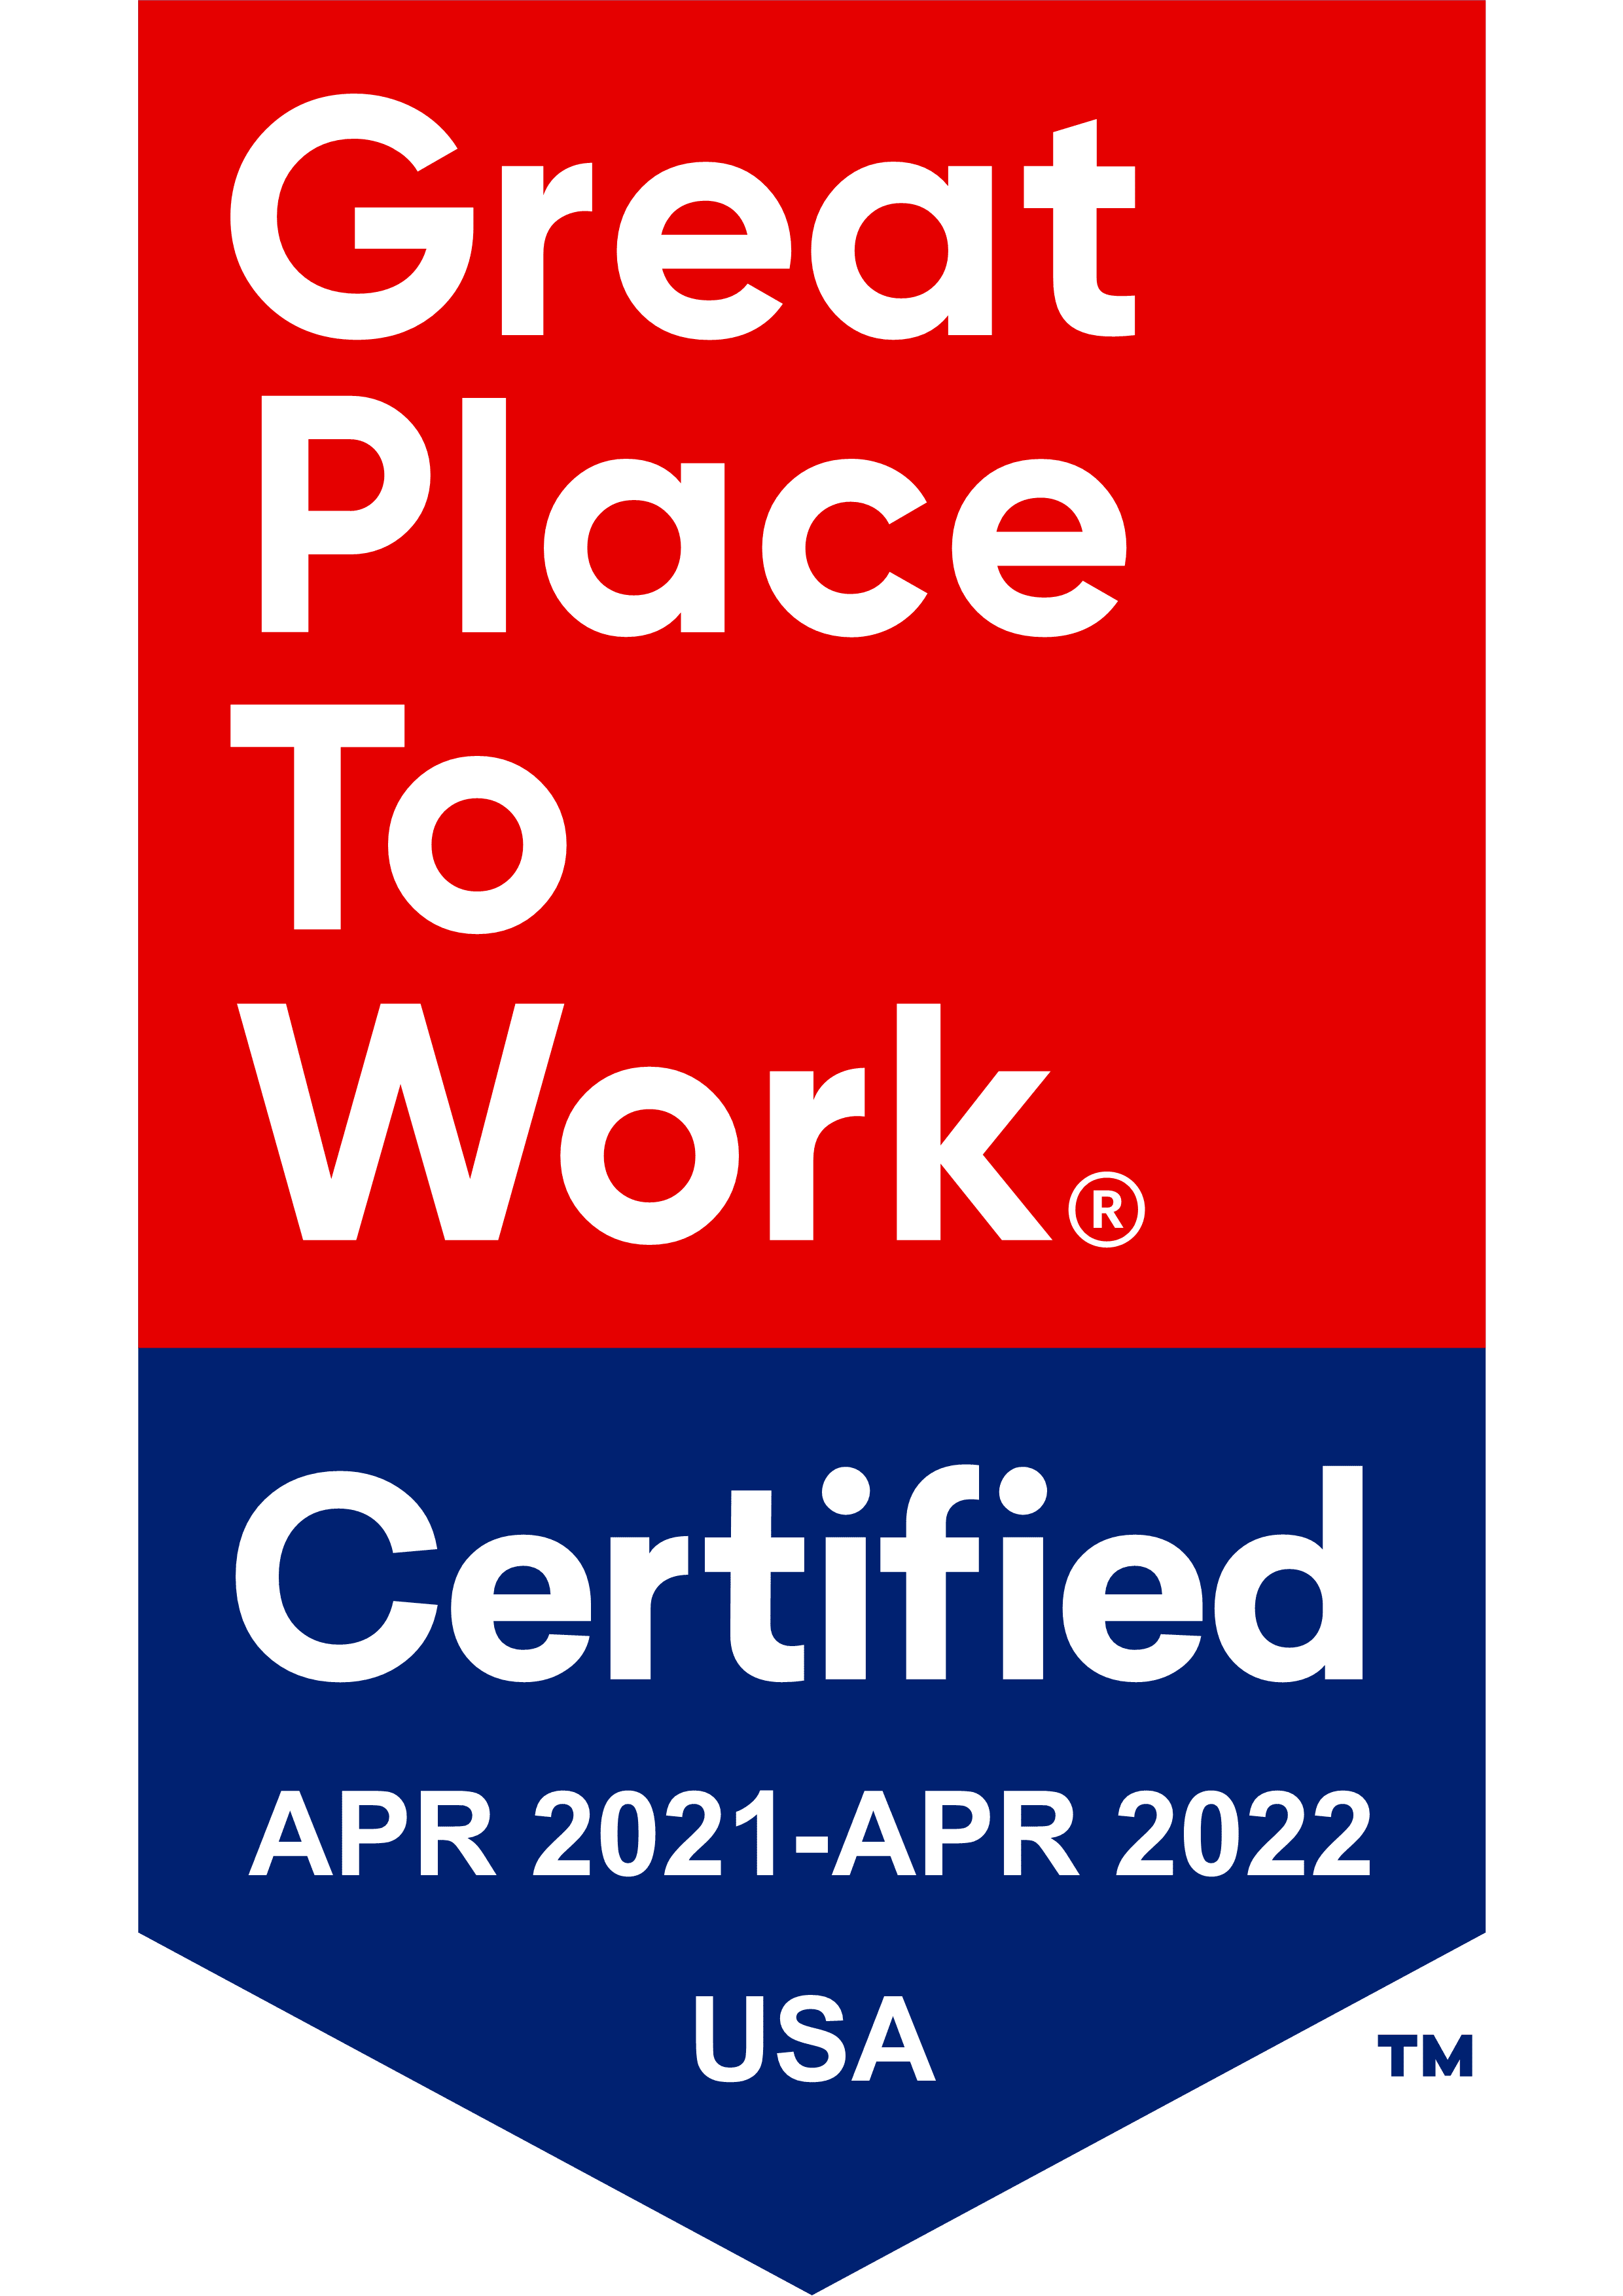 Great places to work badge for The Keystones of Cedar Rapids